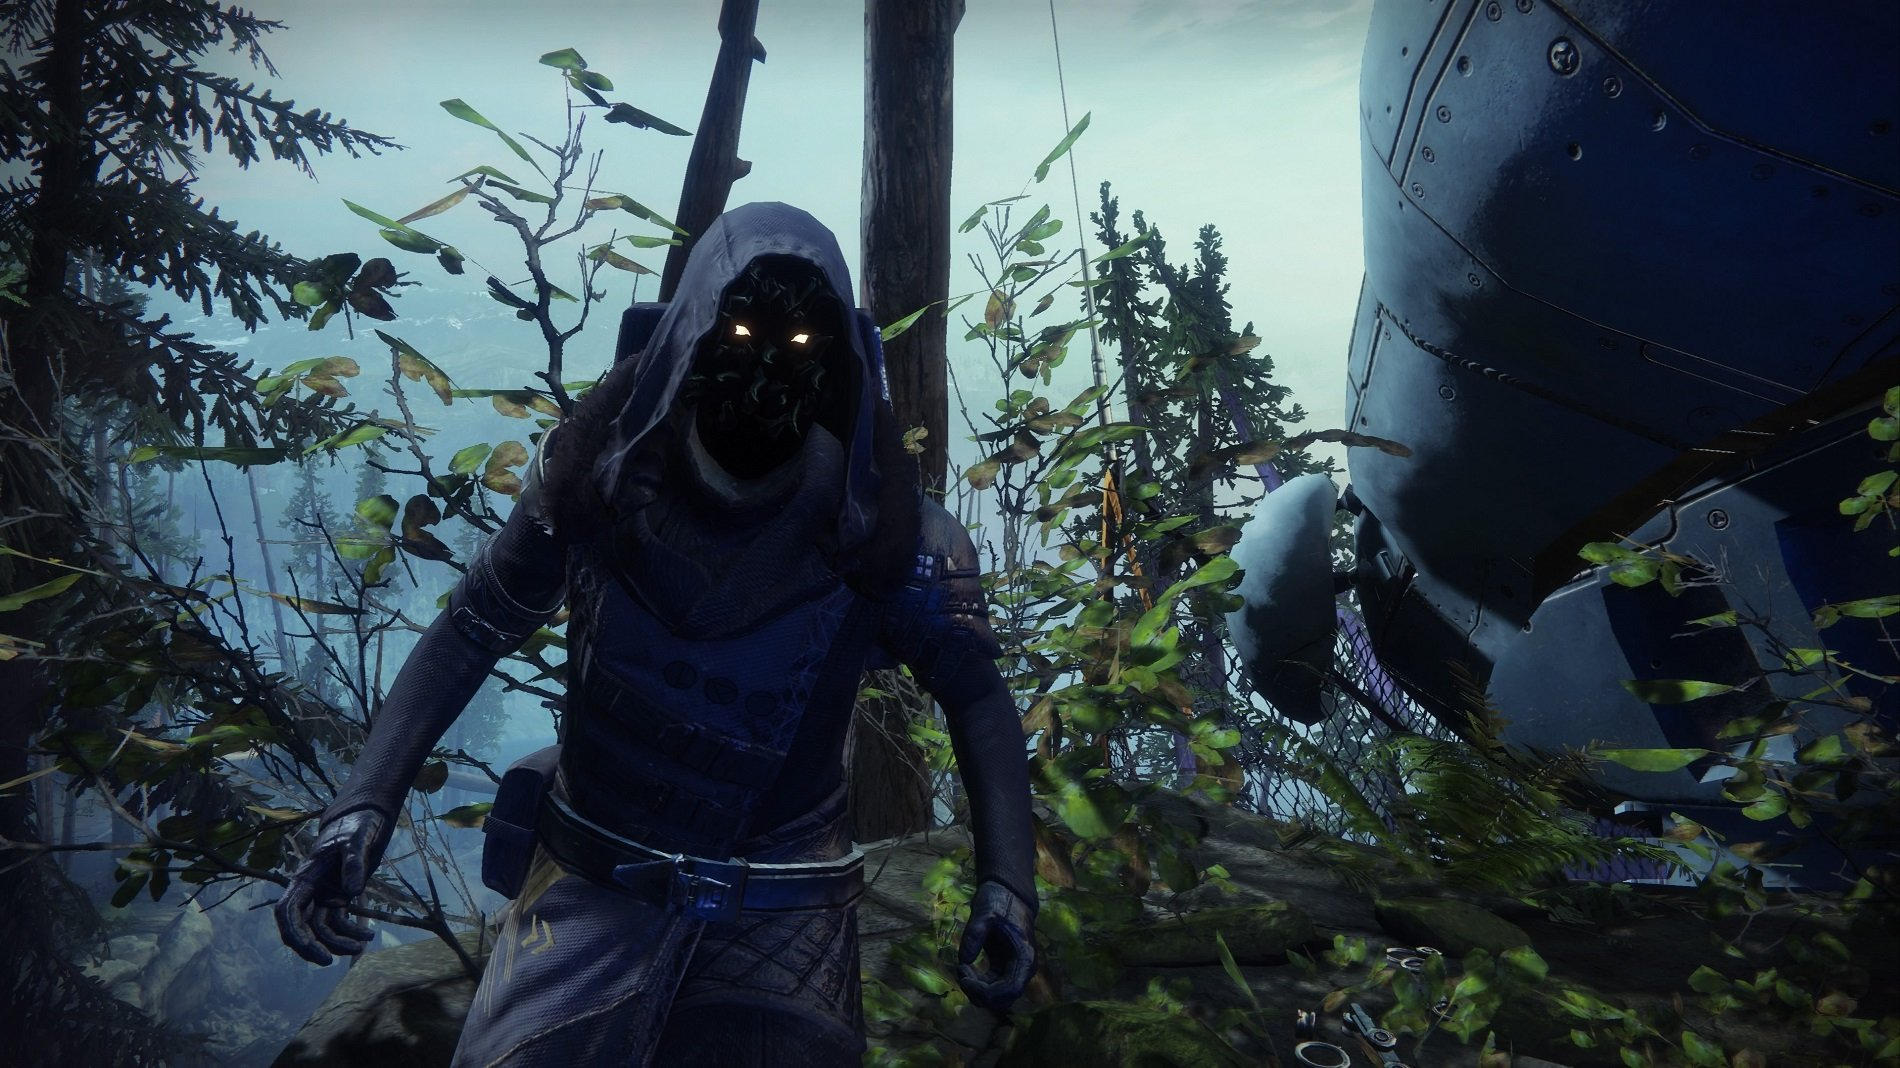 Where to find Xur in Destiny 2 - December 13, 2019